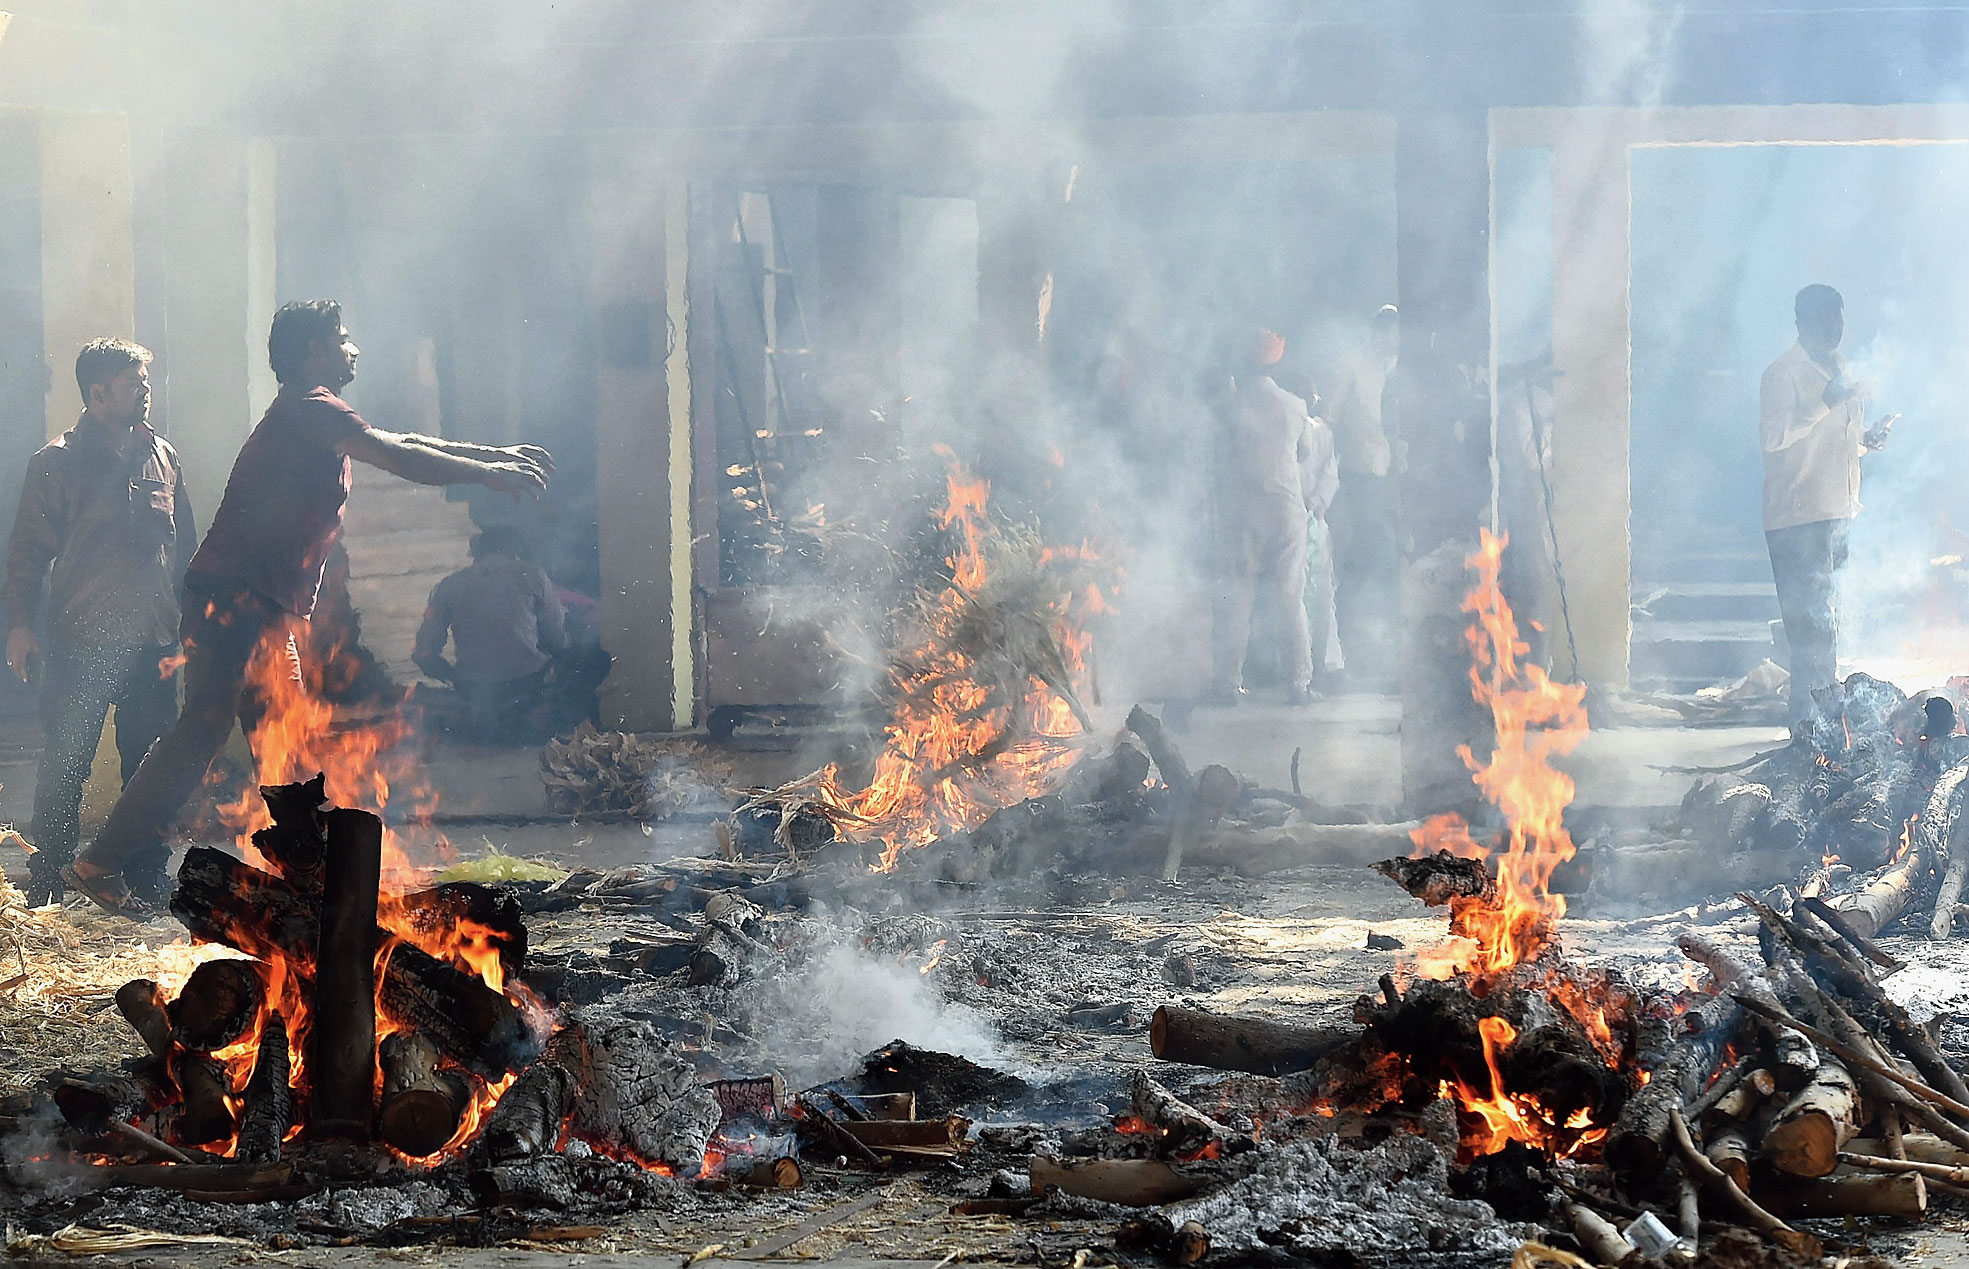 A mass funeral in Amritsar on Saturday for the victims of the train accident.